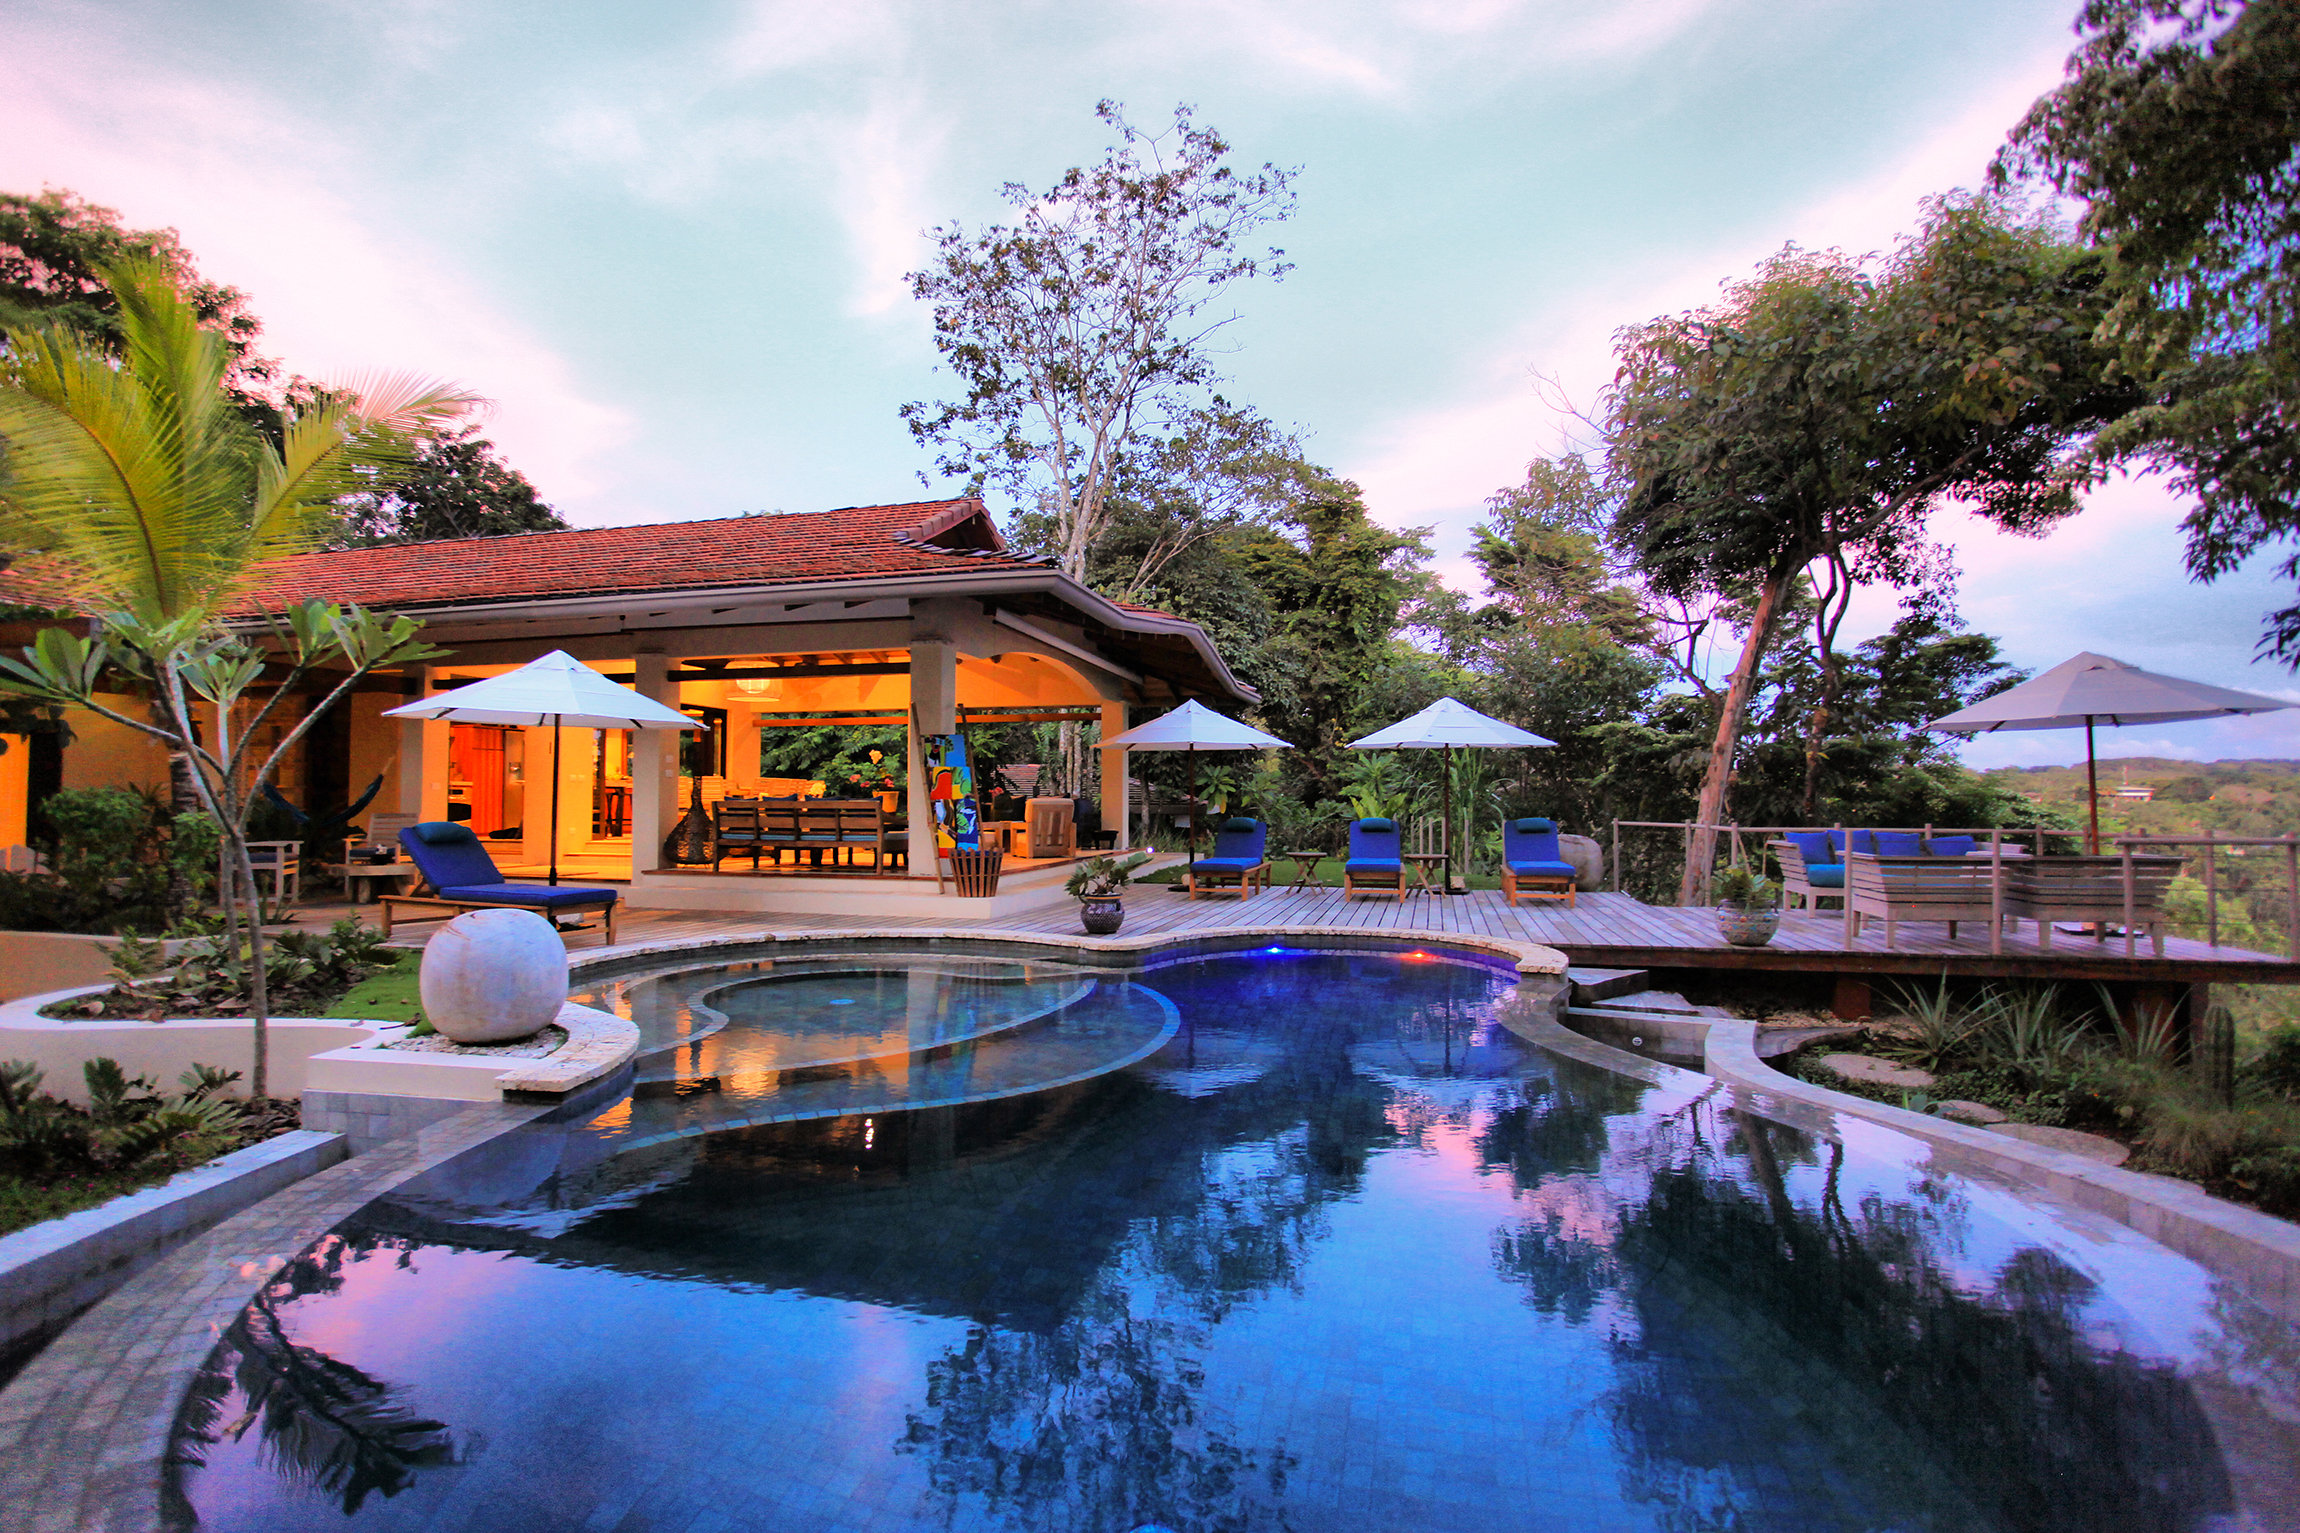 Luxury costa rican vacation top tourist for Luxury vacation costa rica